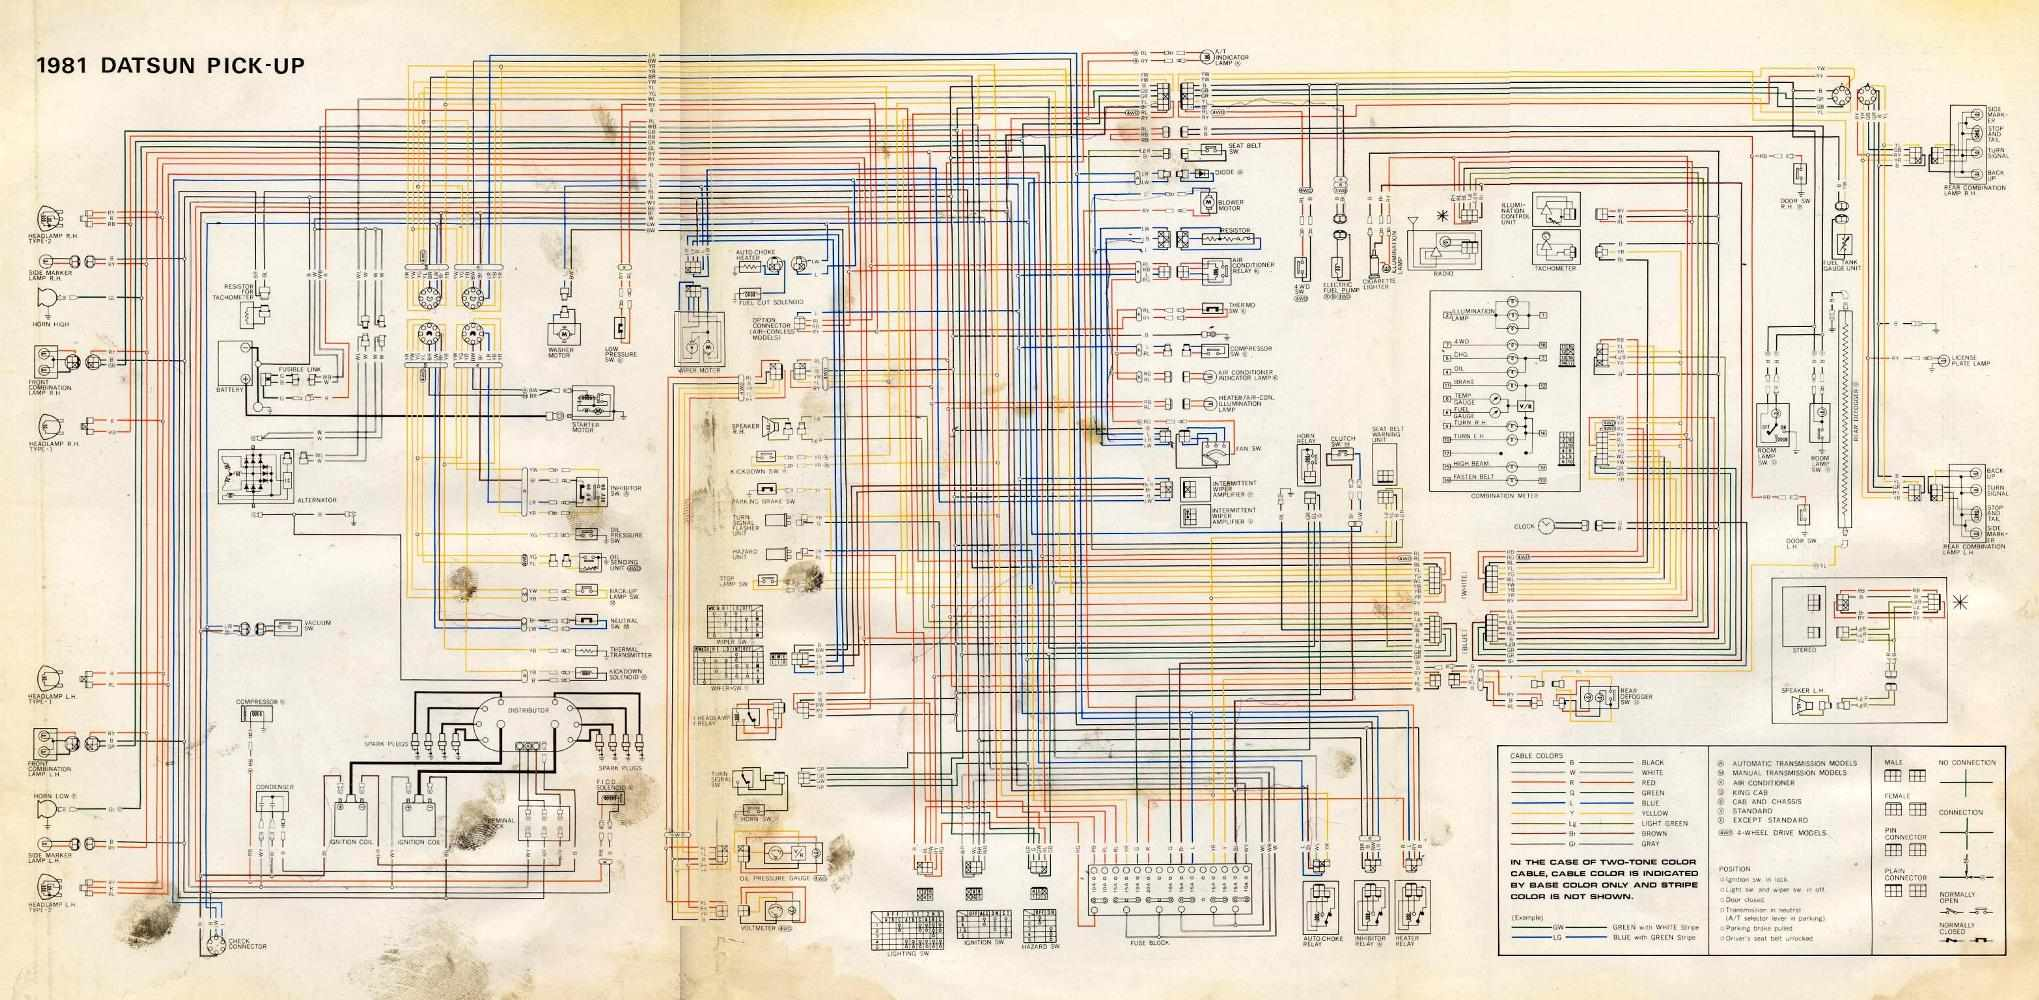 1986 Chevy Wiper Wiring Diagram Library K10 Fuse Box 1978 C10 For Electrical Diagrams Truck Chevrolet